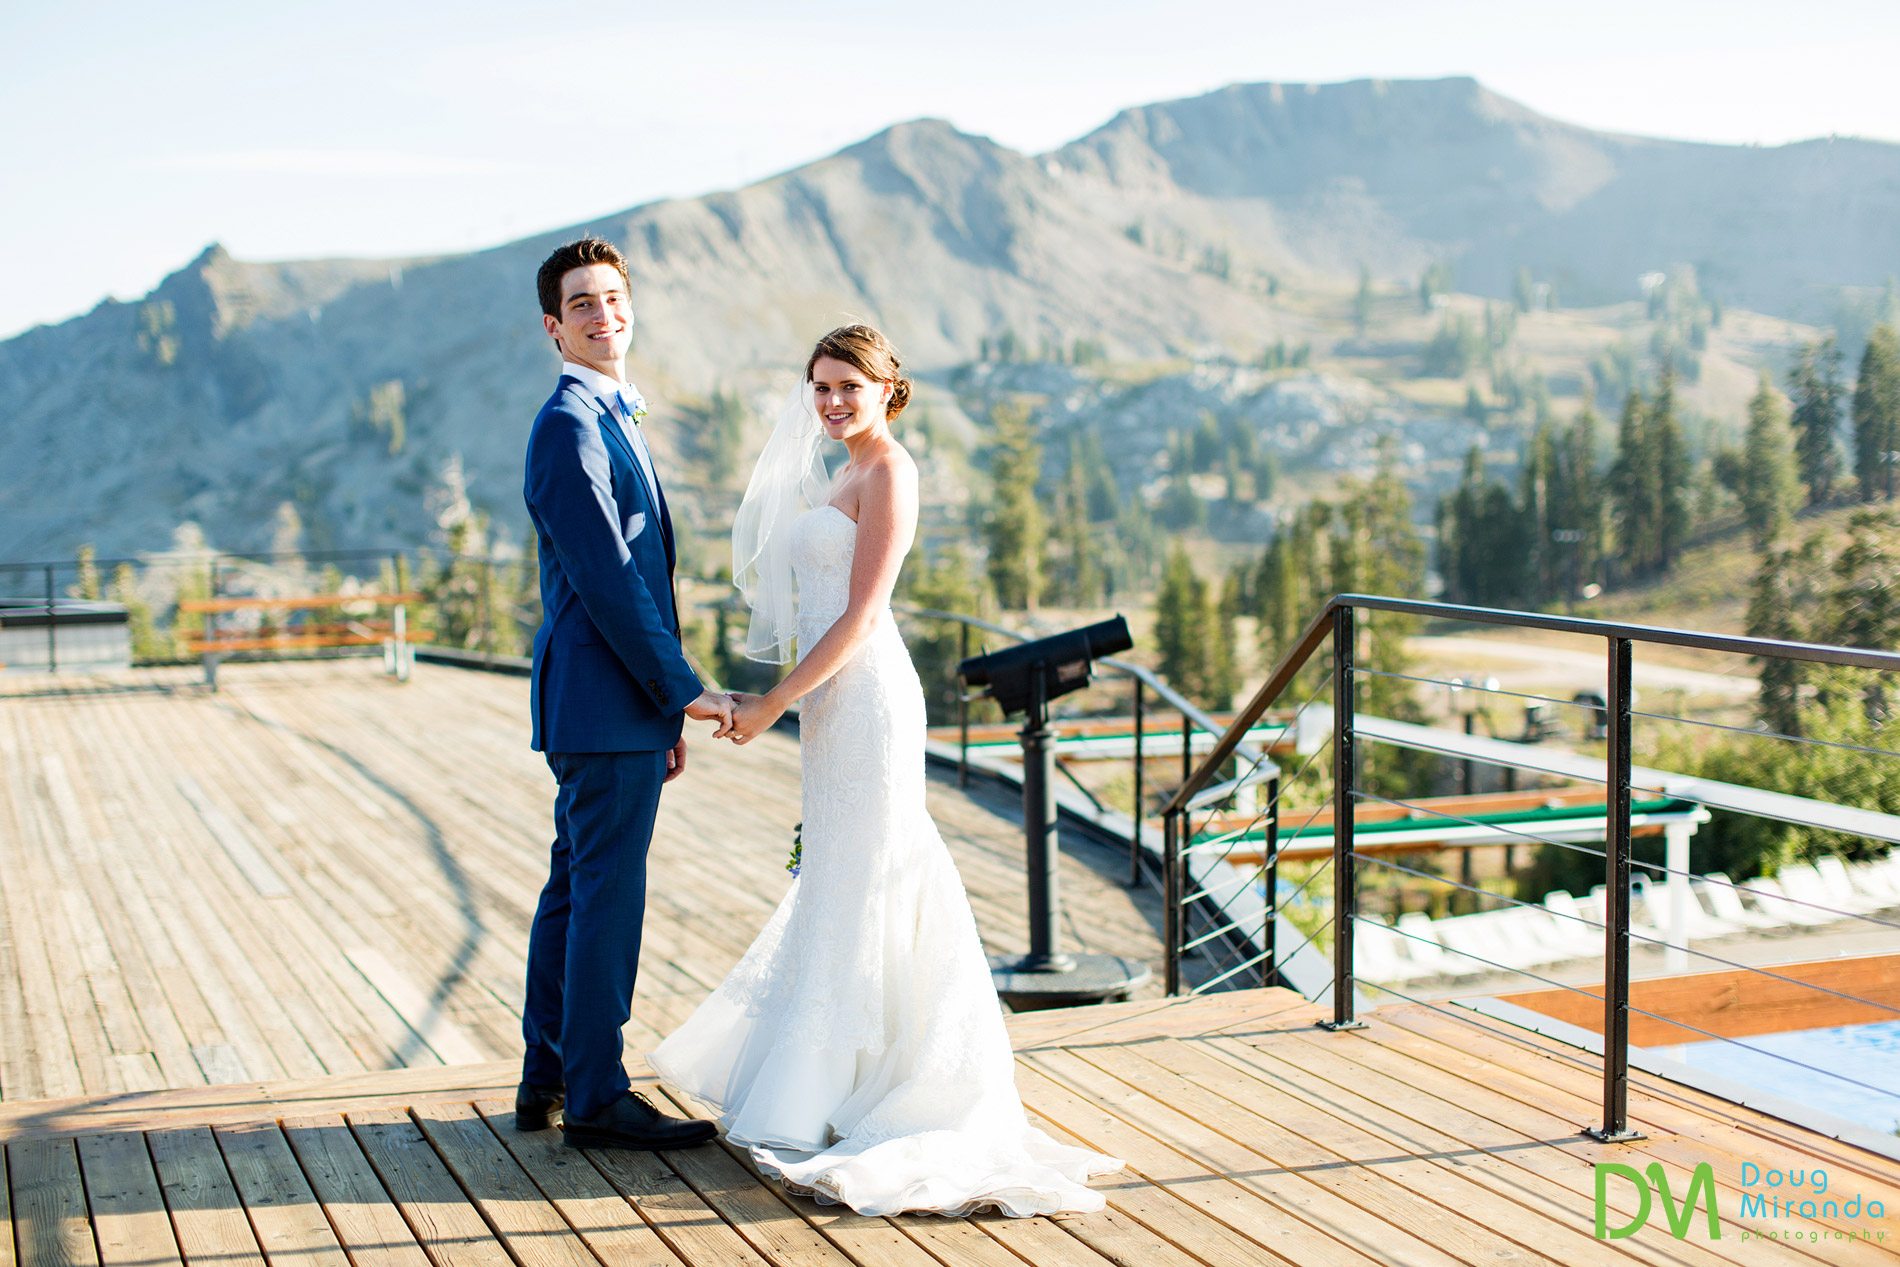 Squaw Valley High Camp Wedding.